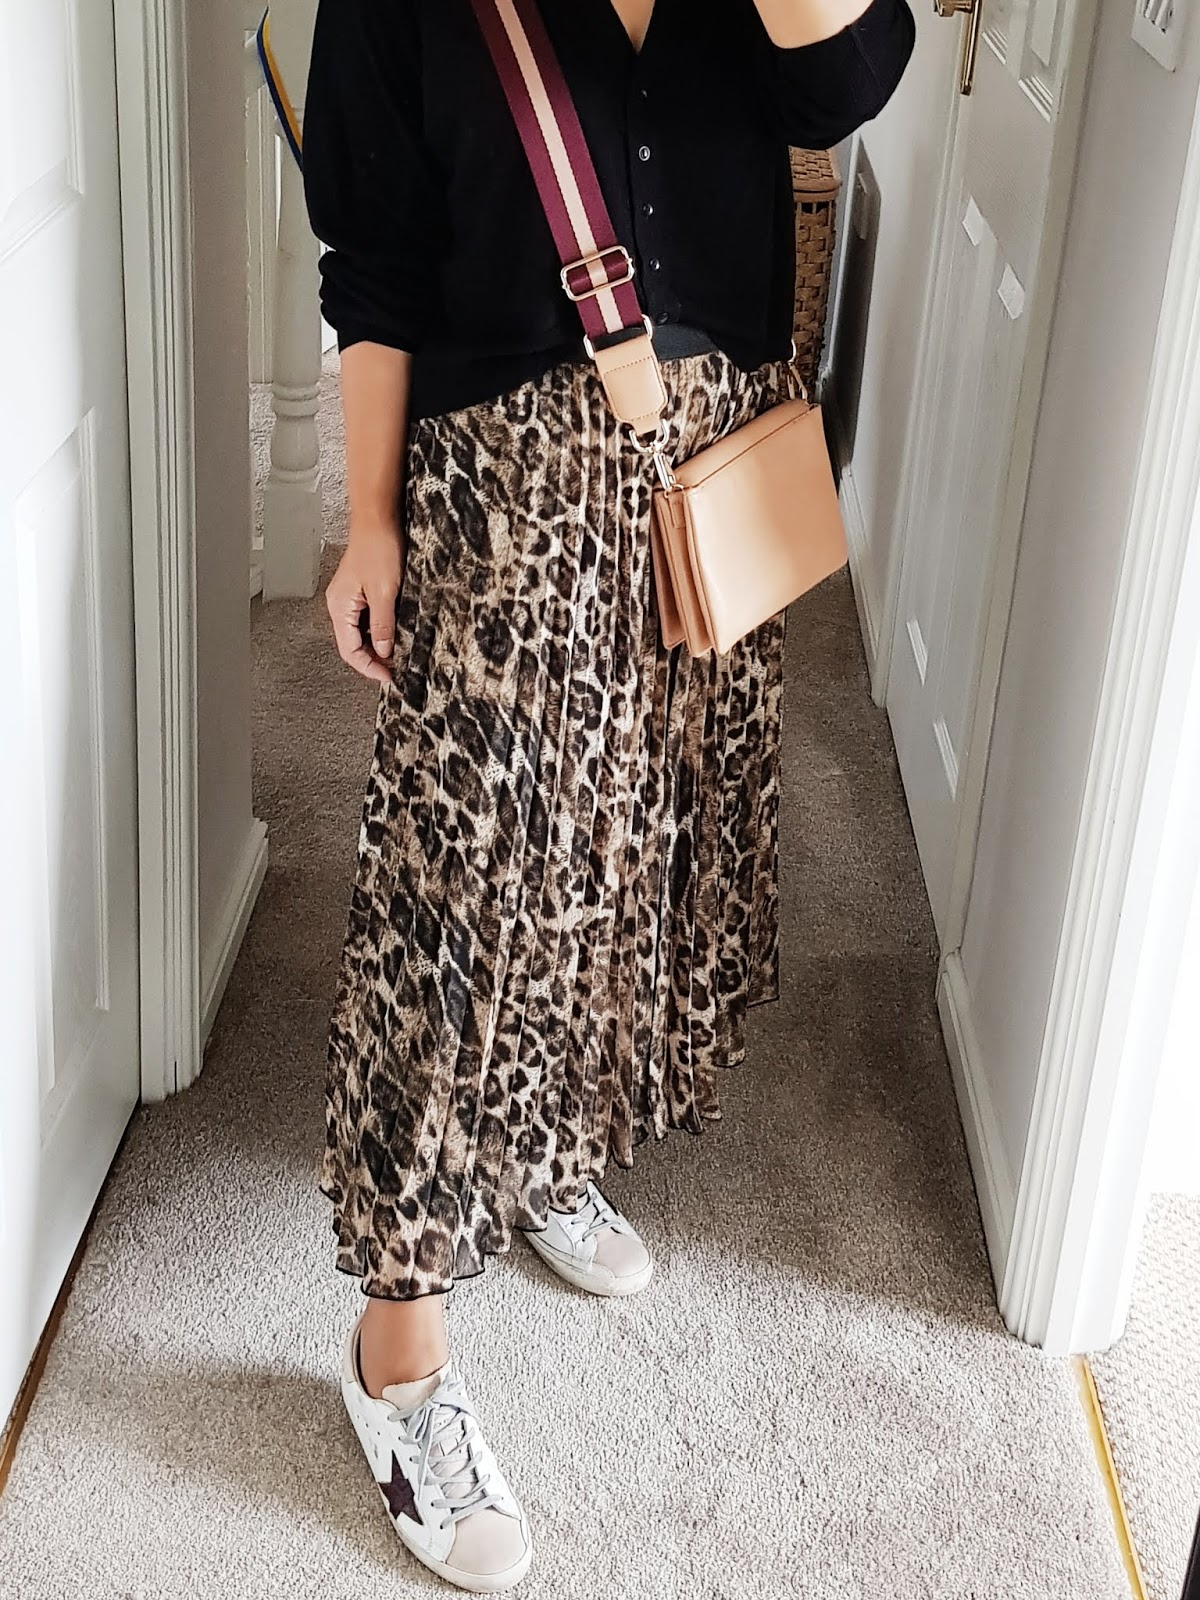 75b58ce61a6c Zara cardigan (ss18) H M Bag (ss16) Primark Skirt (instore AW18) Golden  Goose trainers (AW17) It s August so it means the autumn stock is filtering  in.